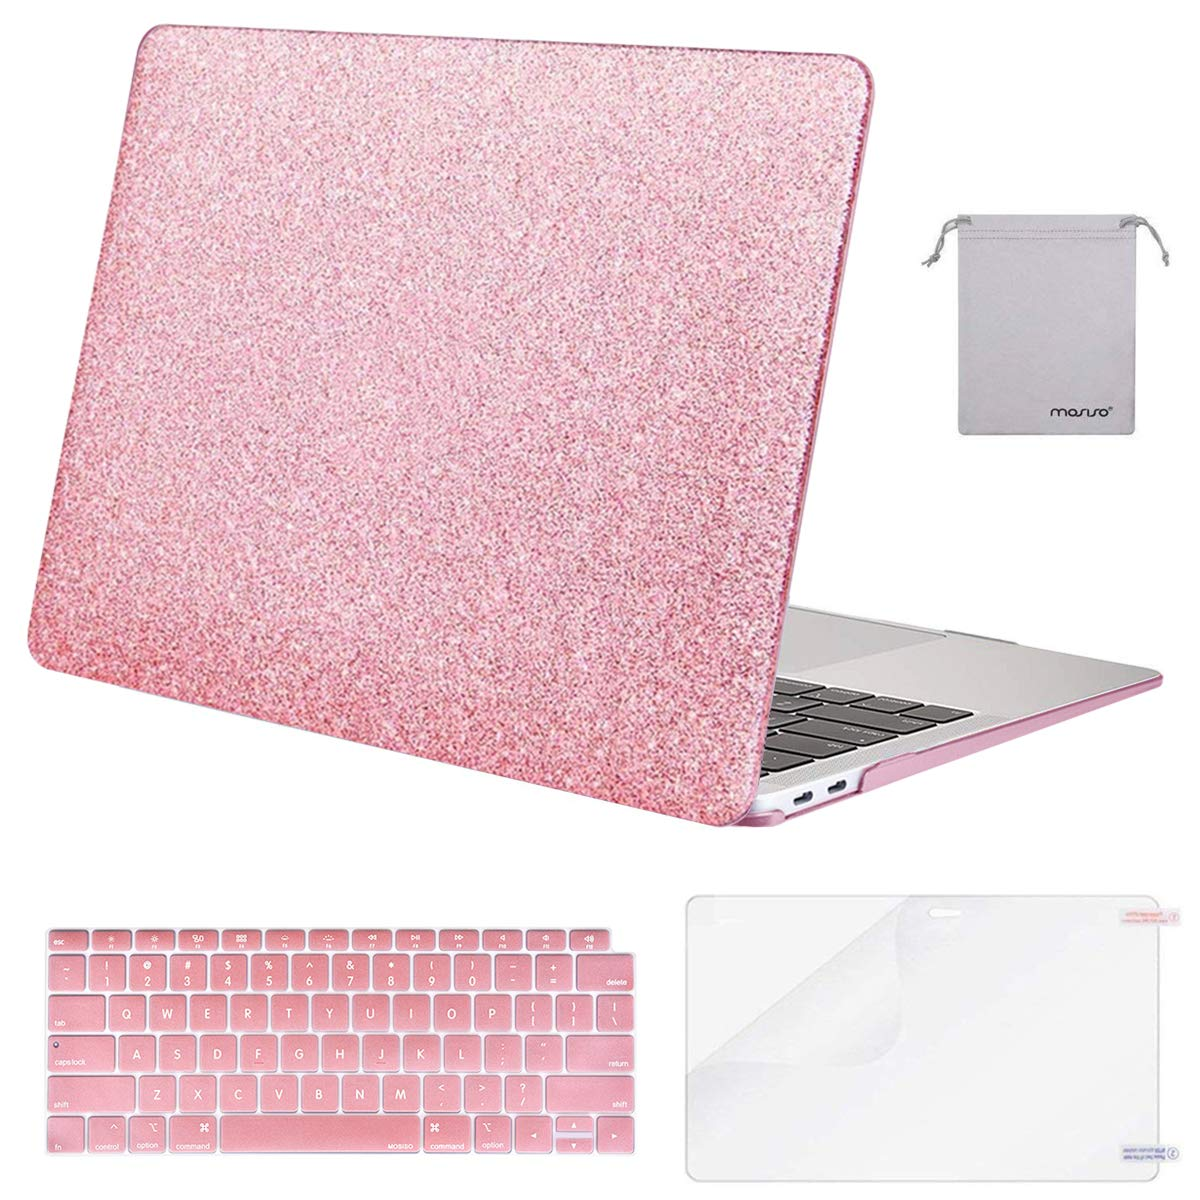 MOSISO MacBook Air 13 inch Case 2020 2019 2018 Release A2179 A1932 with Retina Display, Plastic Hard Shell&Keyboard Cover&Screen Protector&Storage Bag Compatible with MacBook Air 13, Shine Rose Golden